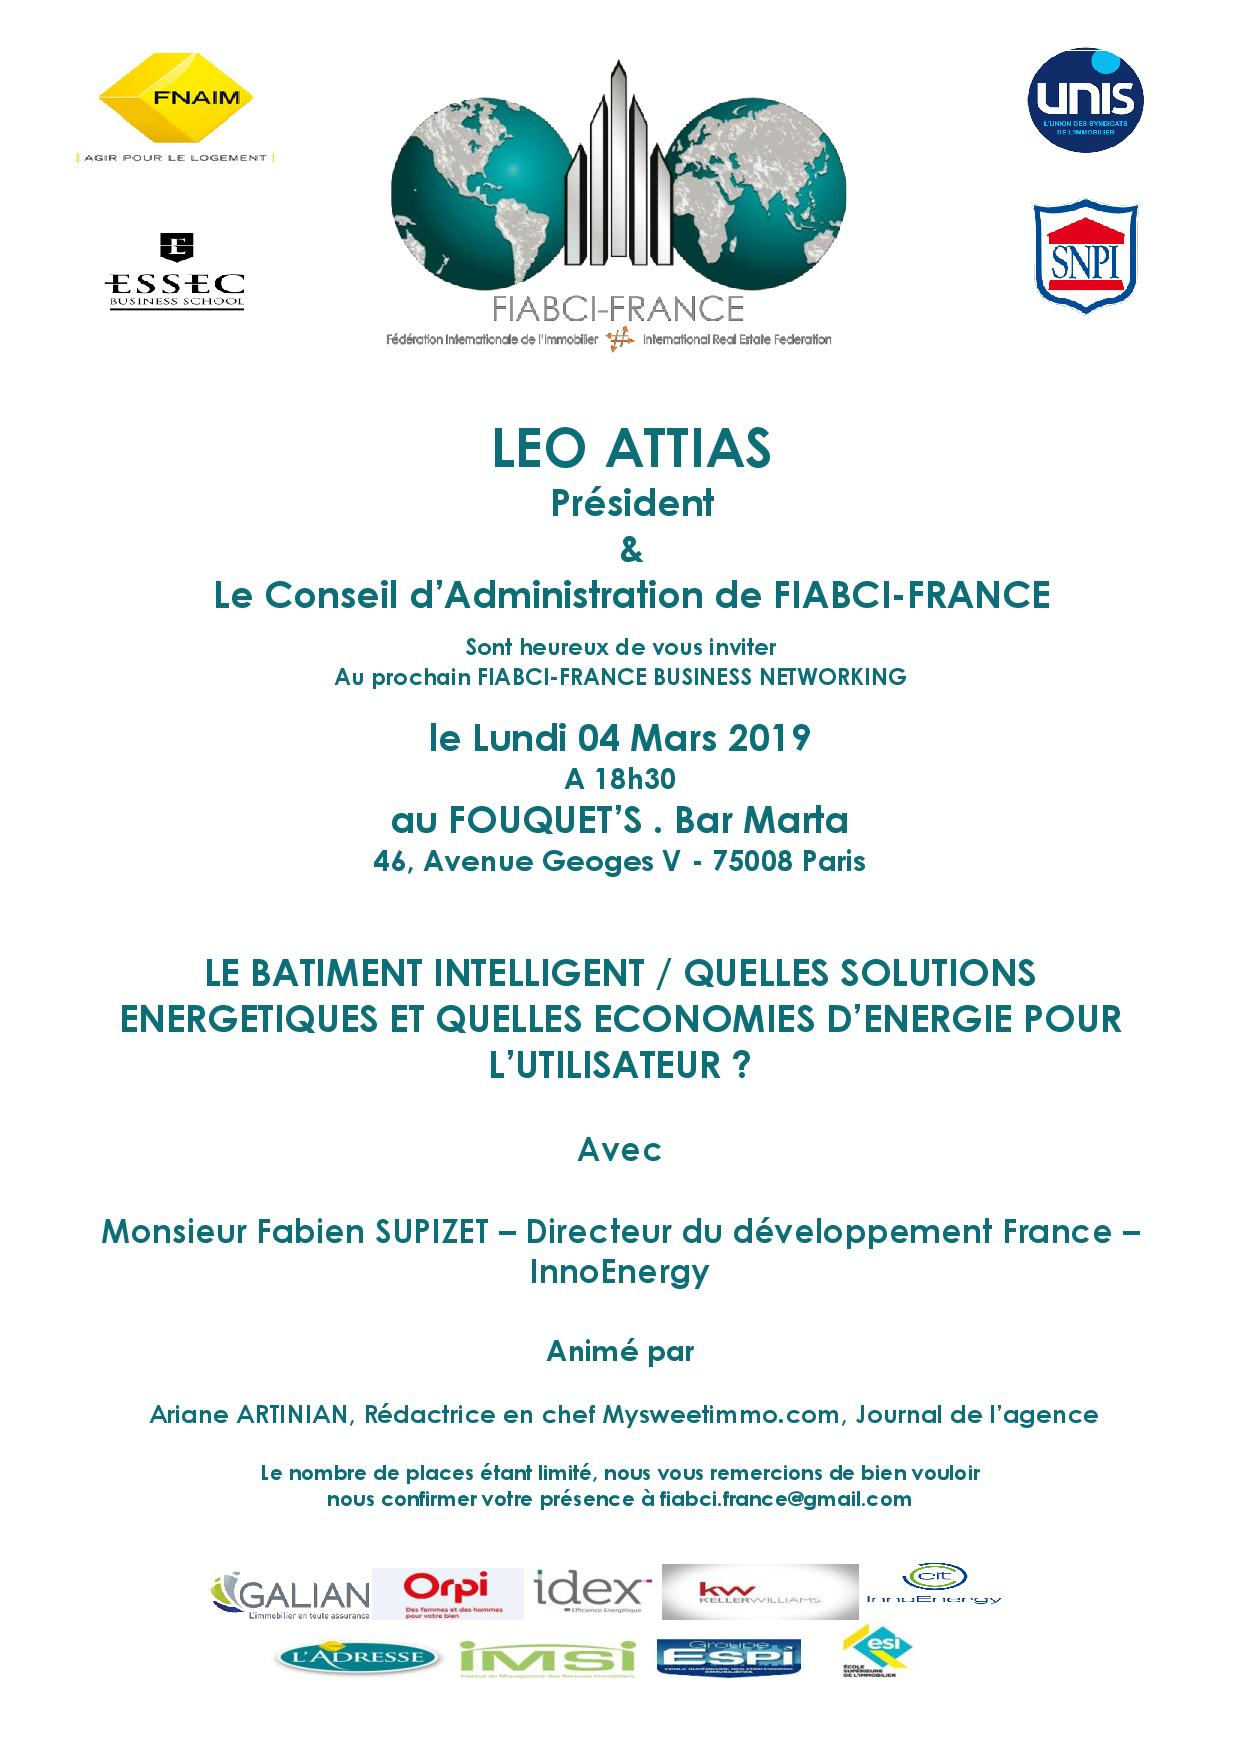 Business Networking du Lundi 04 Mars 2019